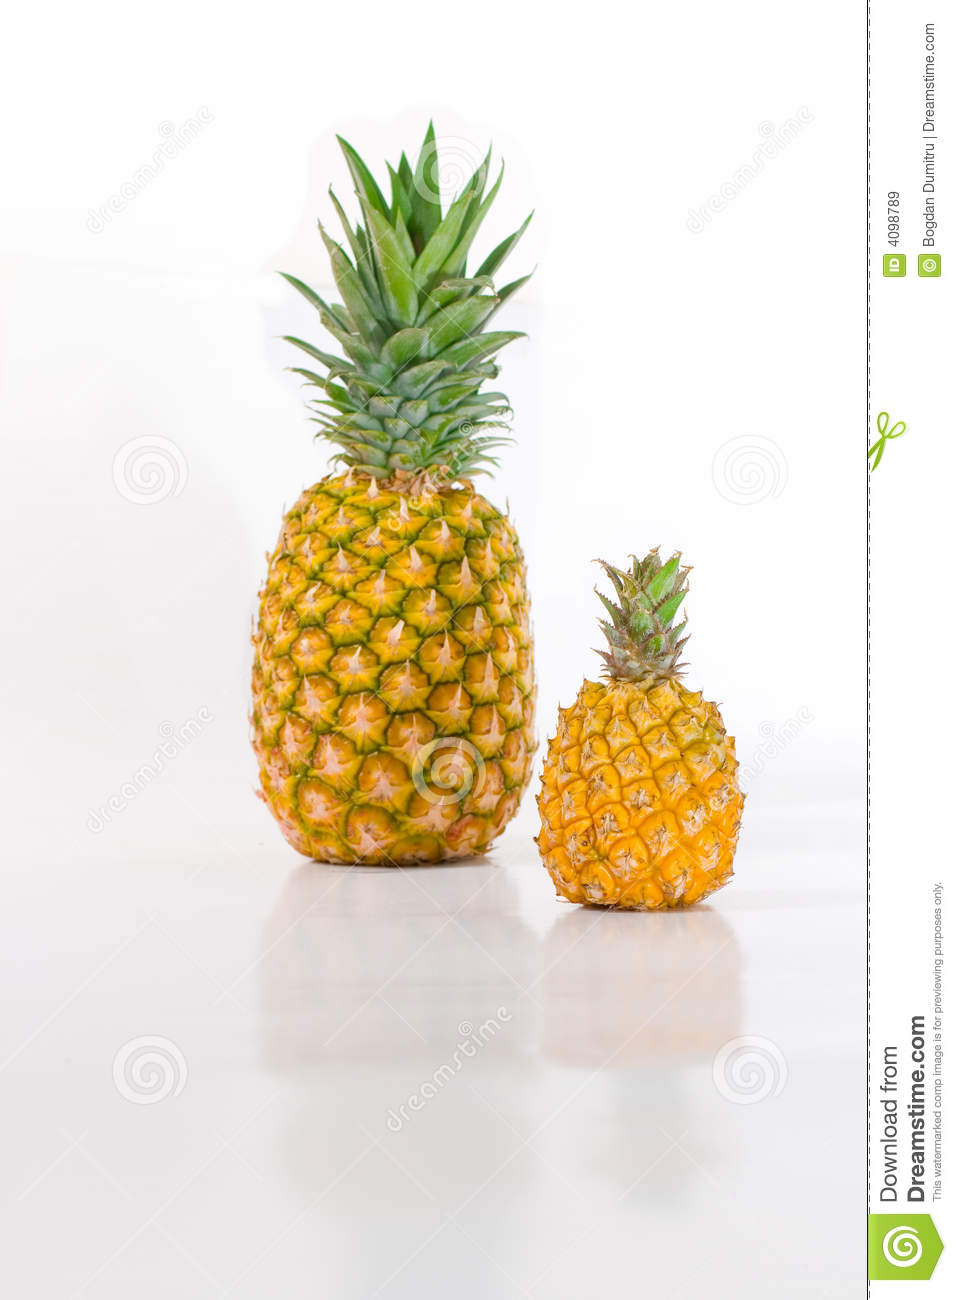 Image result for large and small pineapple